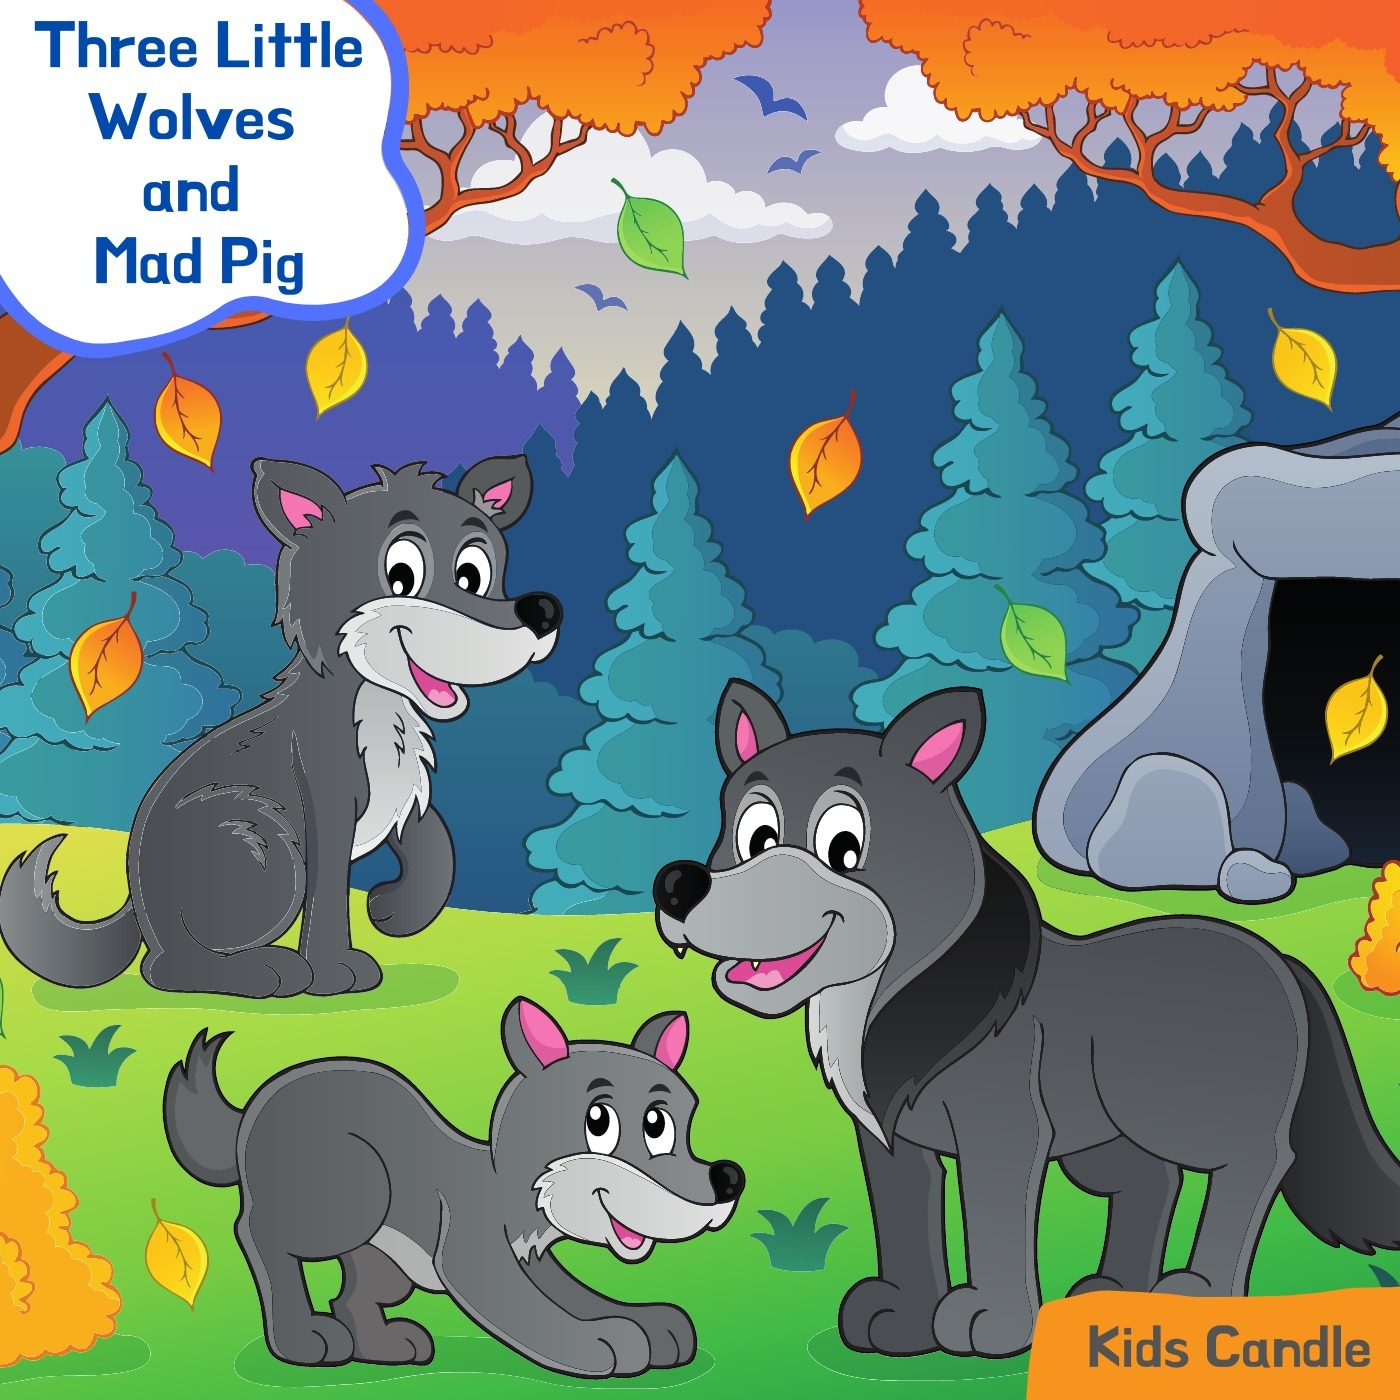 The Three Little Wolves and Mad Pig